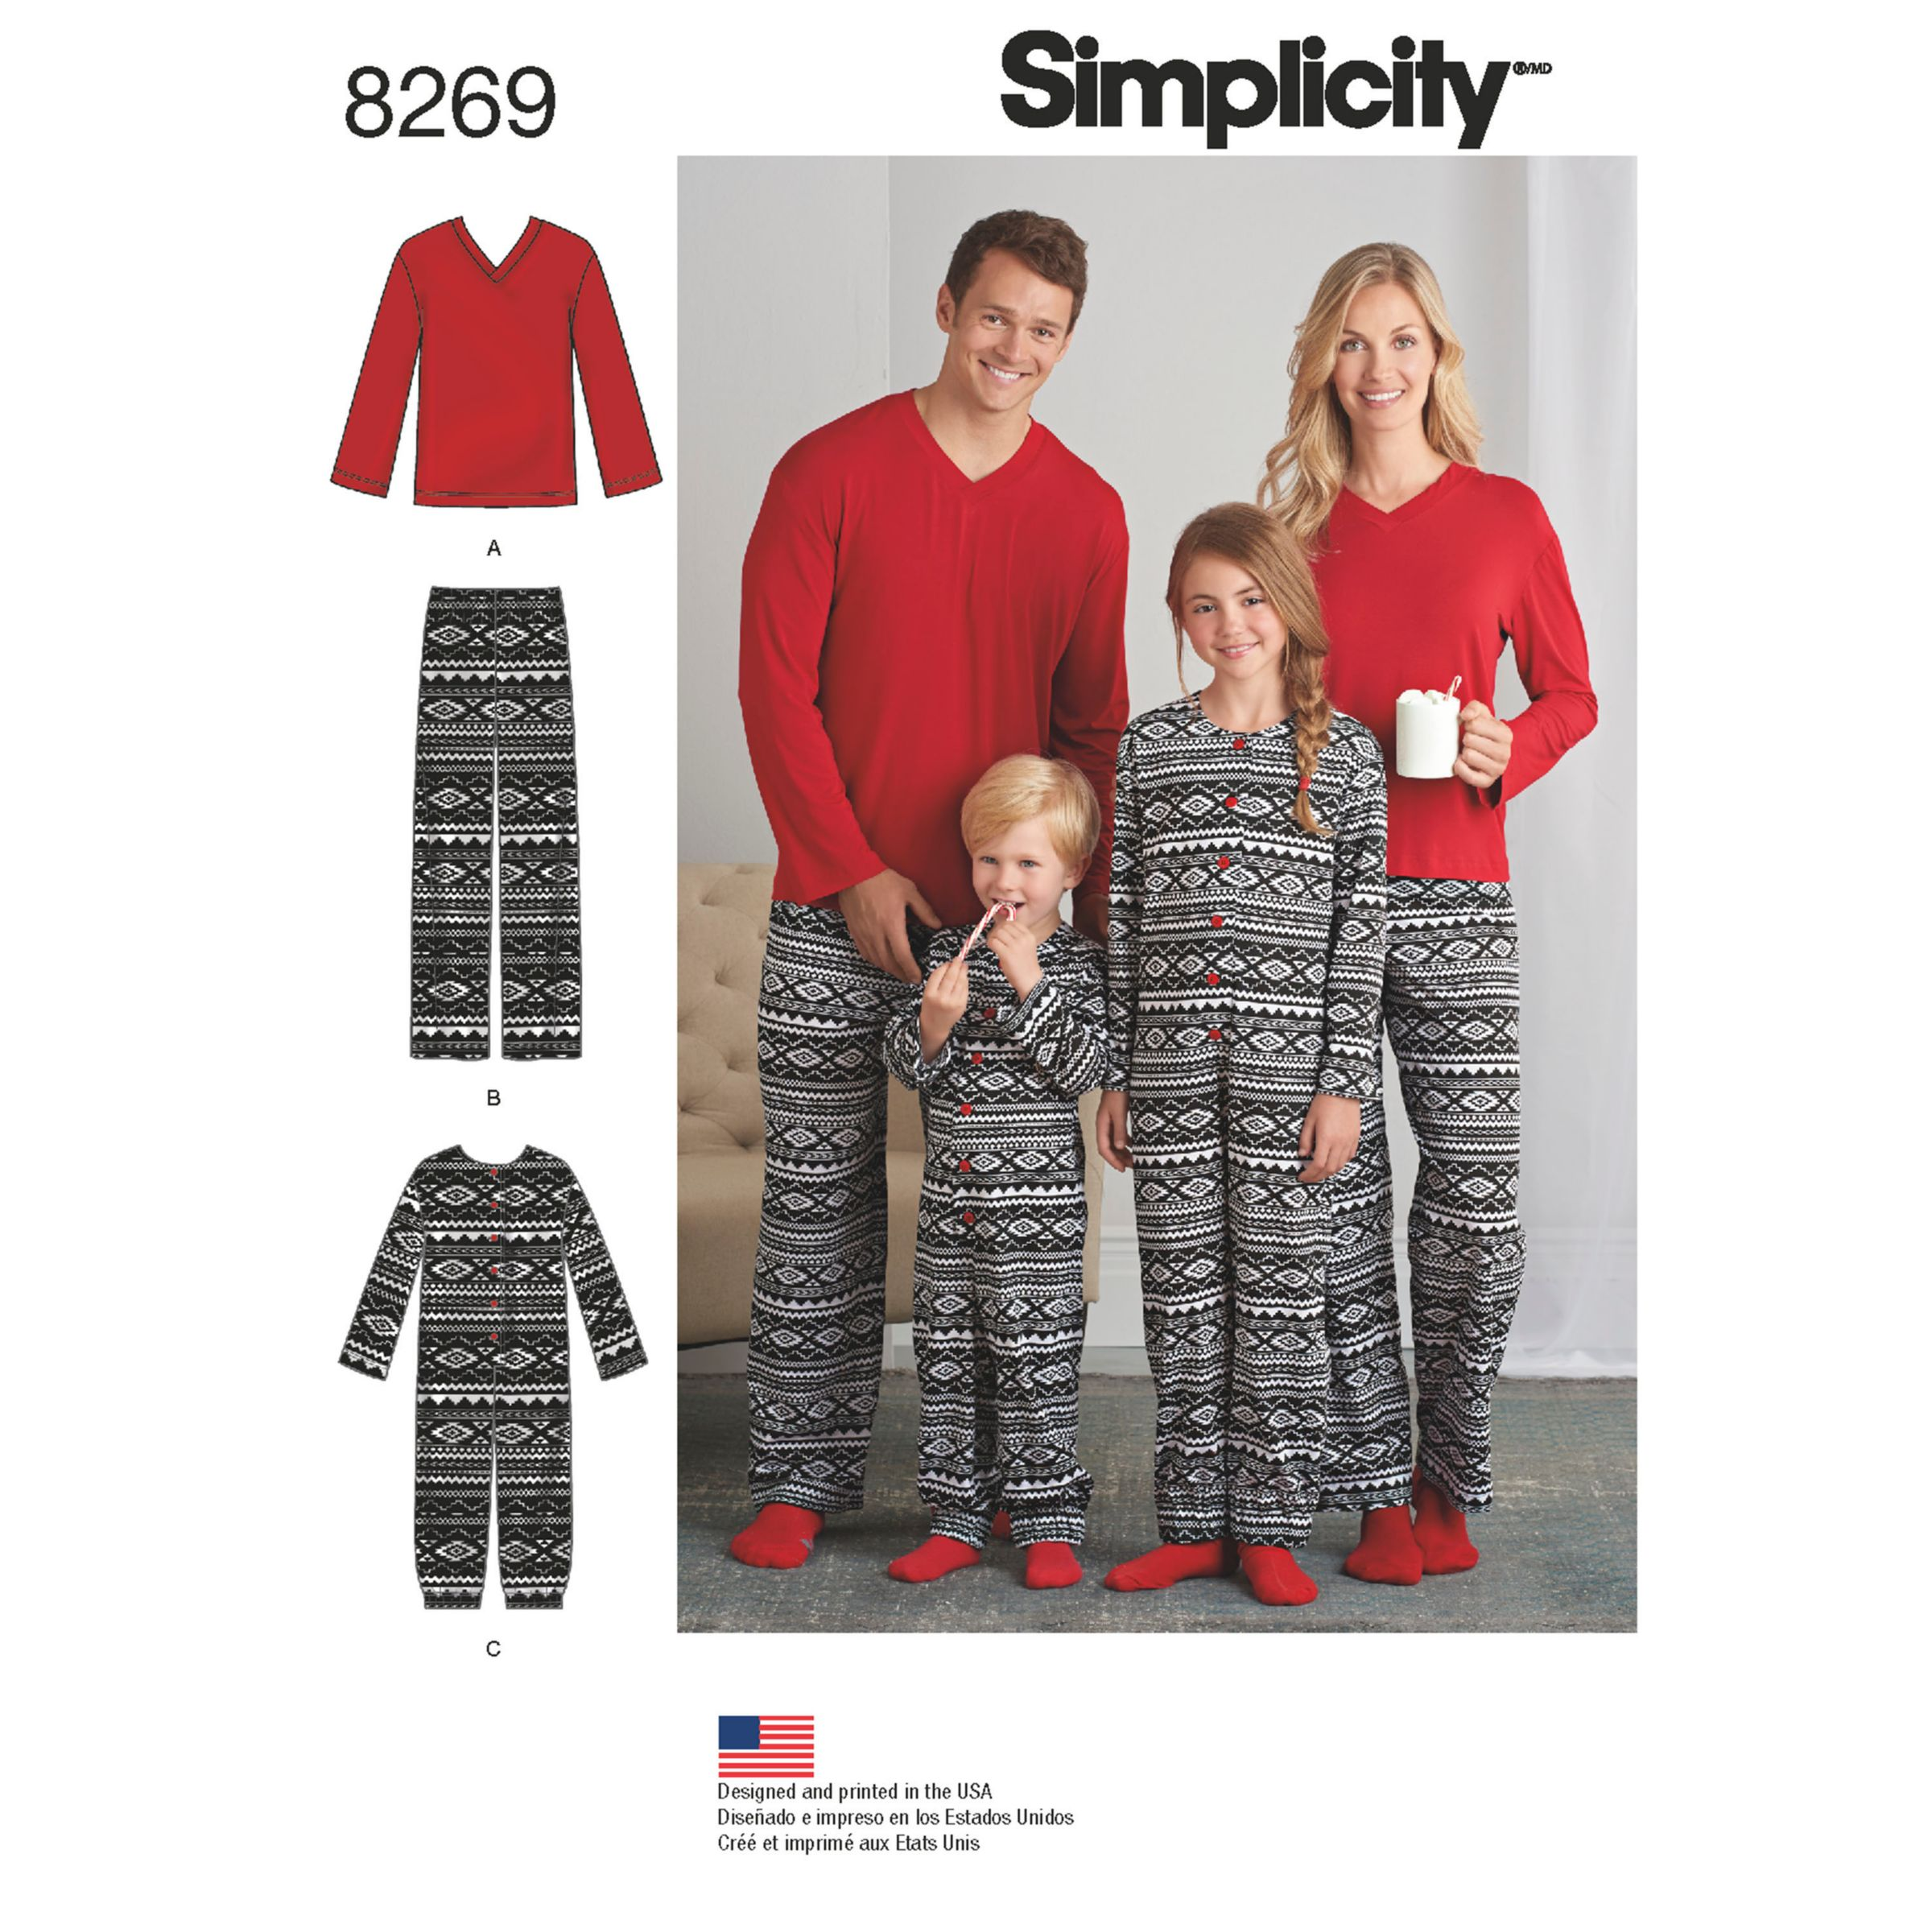 Simplicity Simplicity Unisex Adult Joggers and Children's Jumpsuit Sewing Pattern, 8269, A